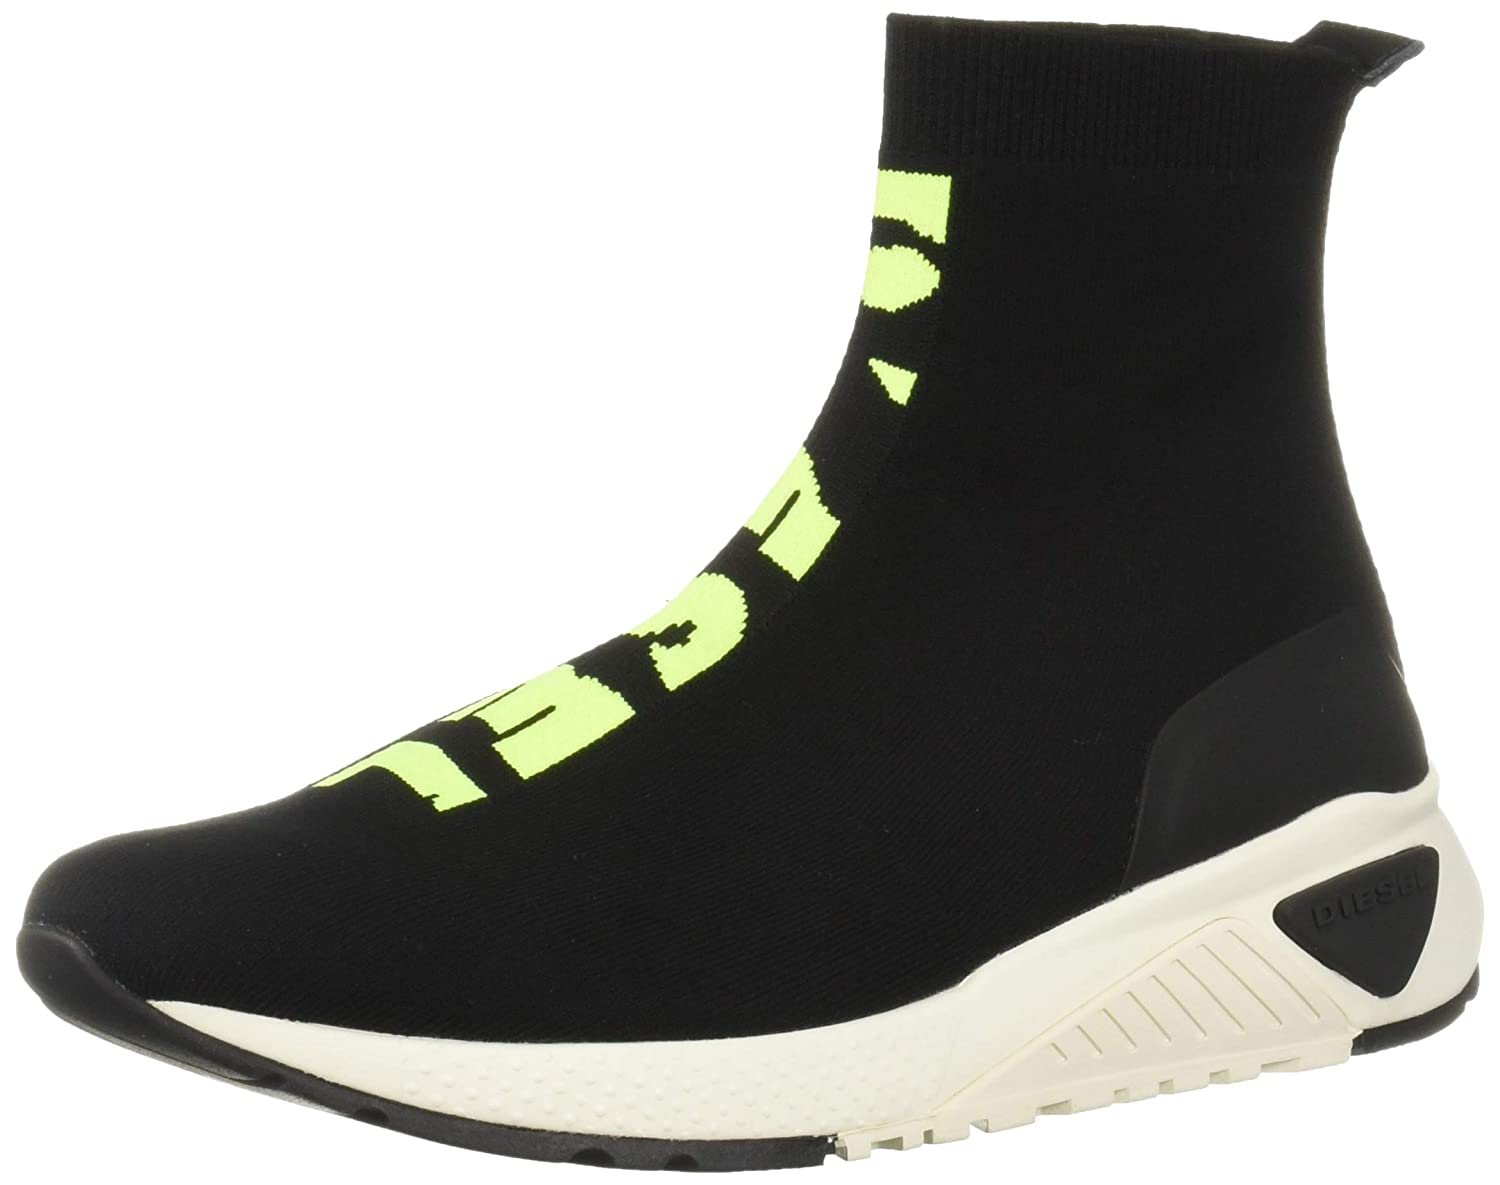 e0a3925a35bc3 Amazon.com: Diesel Men's SKB S-kb ATHL Sock-Sneaker Mid: Shoes